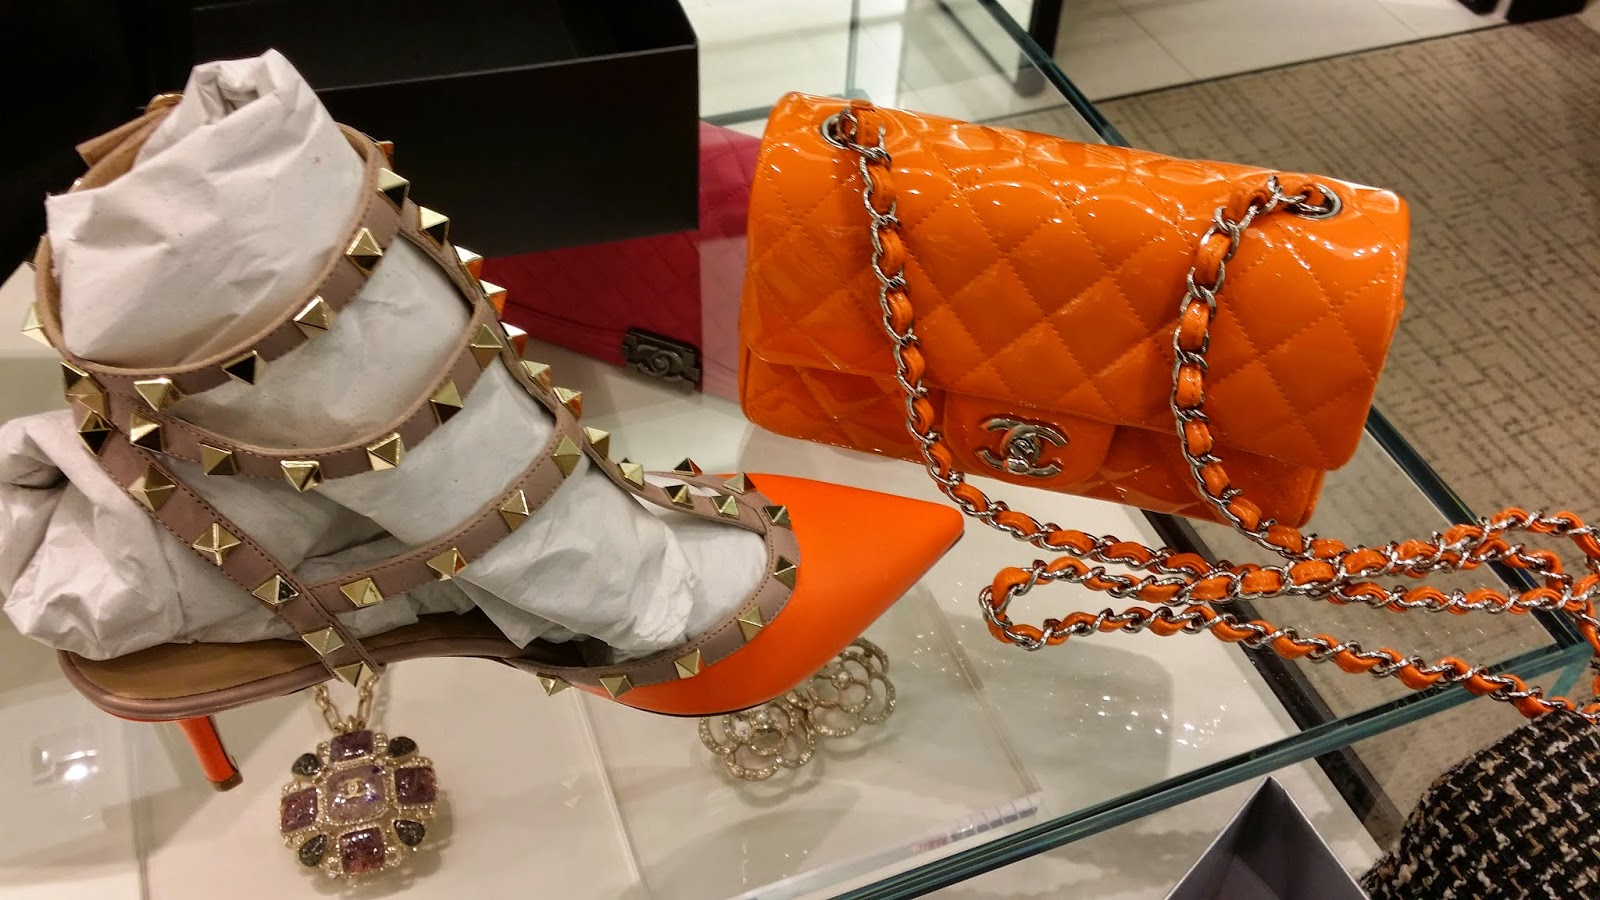 I Brought Along My Orange Valentino Rockstuds Since Was Looking For A Matching Bag If You Didn T Know This Already Am Matchy